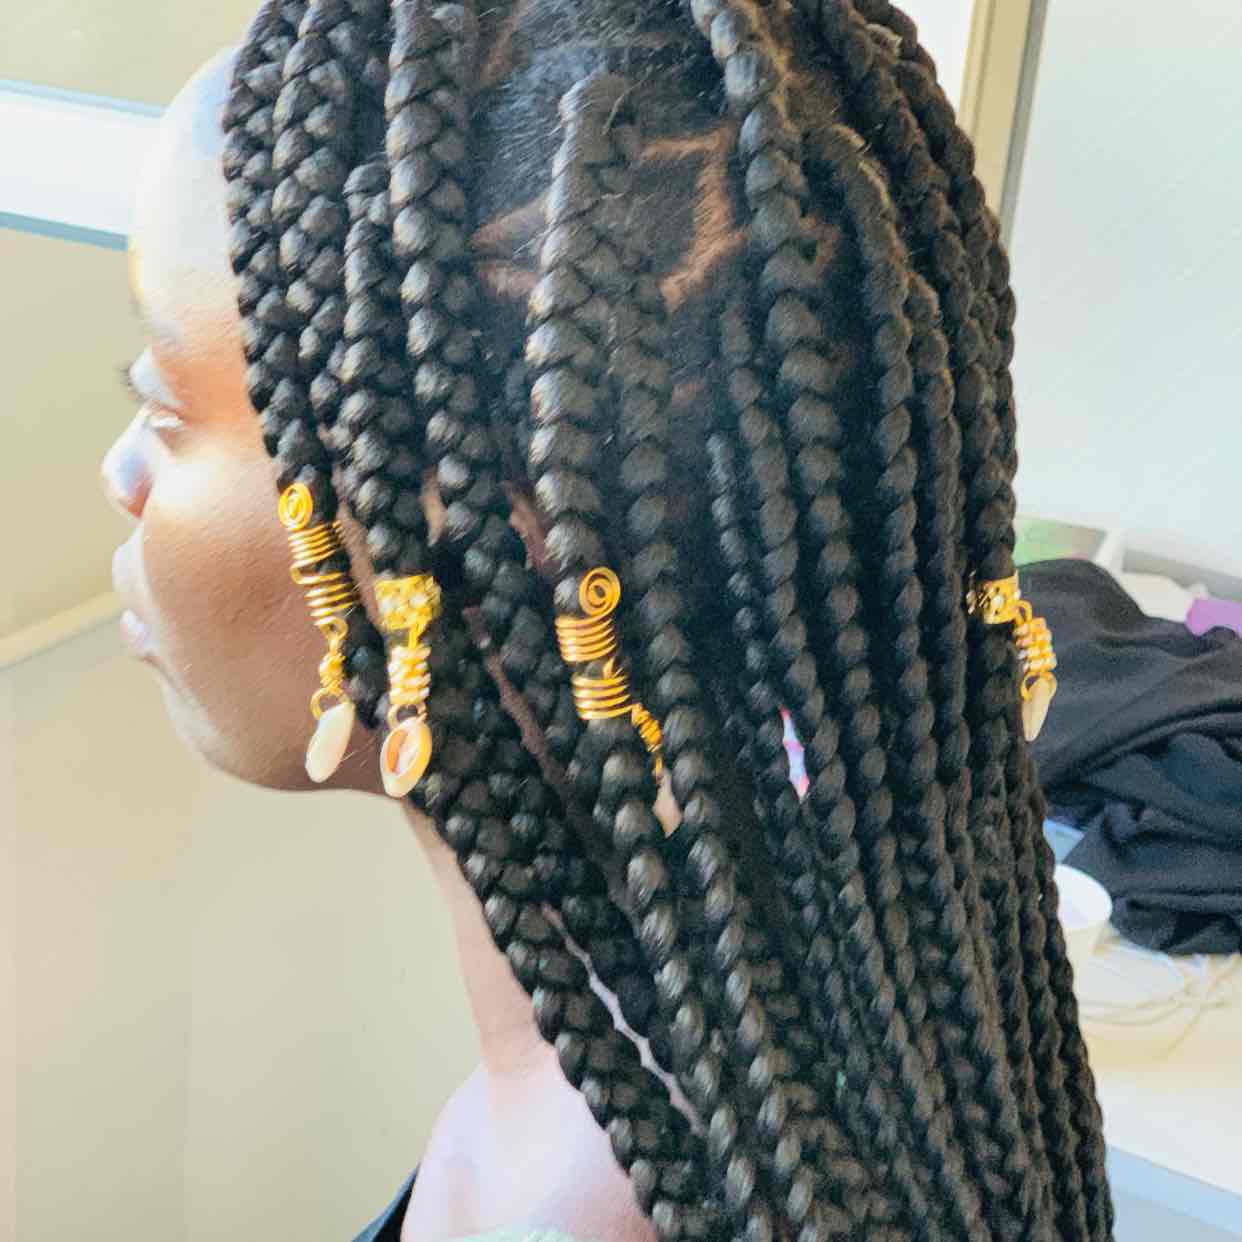 salon de coiffure afro tresse tresses box braids crochet braids vanilles tissages paris 75 77 78 91 92 93 94 95 JACCCQGJ